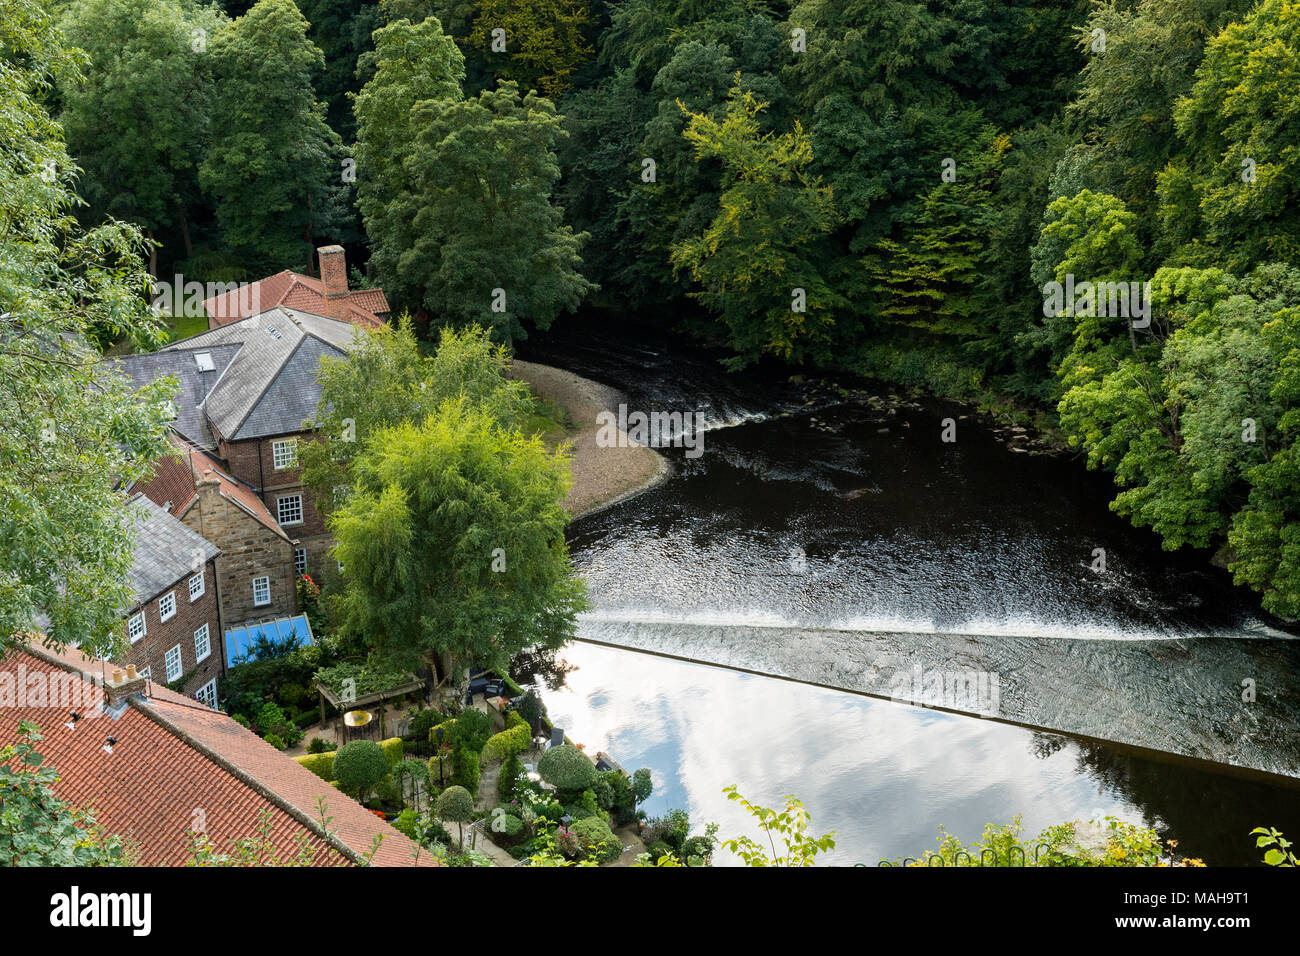 High view of water flowing over weir across River Nidd & historic Castle Mills, an old textile mill converted to homes - Knaresborough, England, UK. - Stock Image